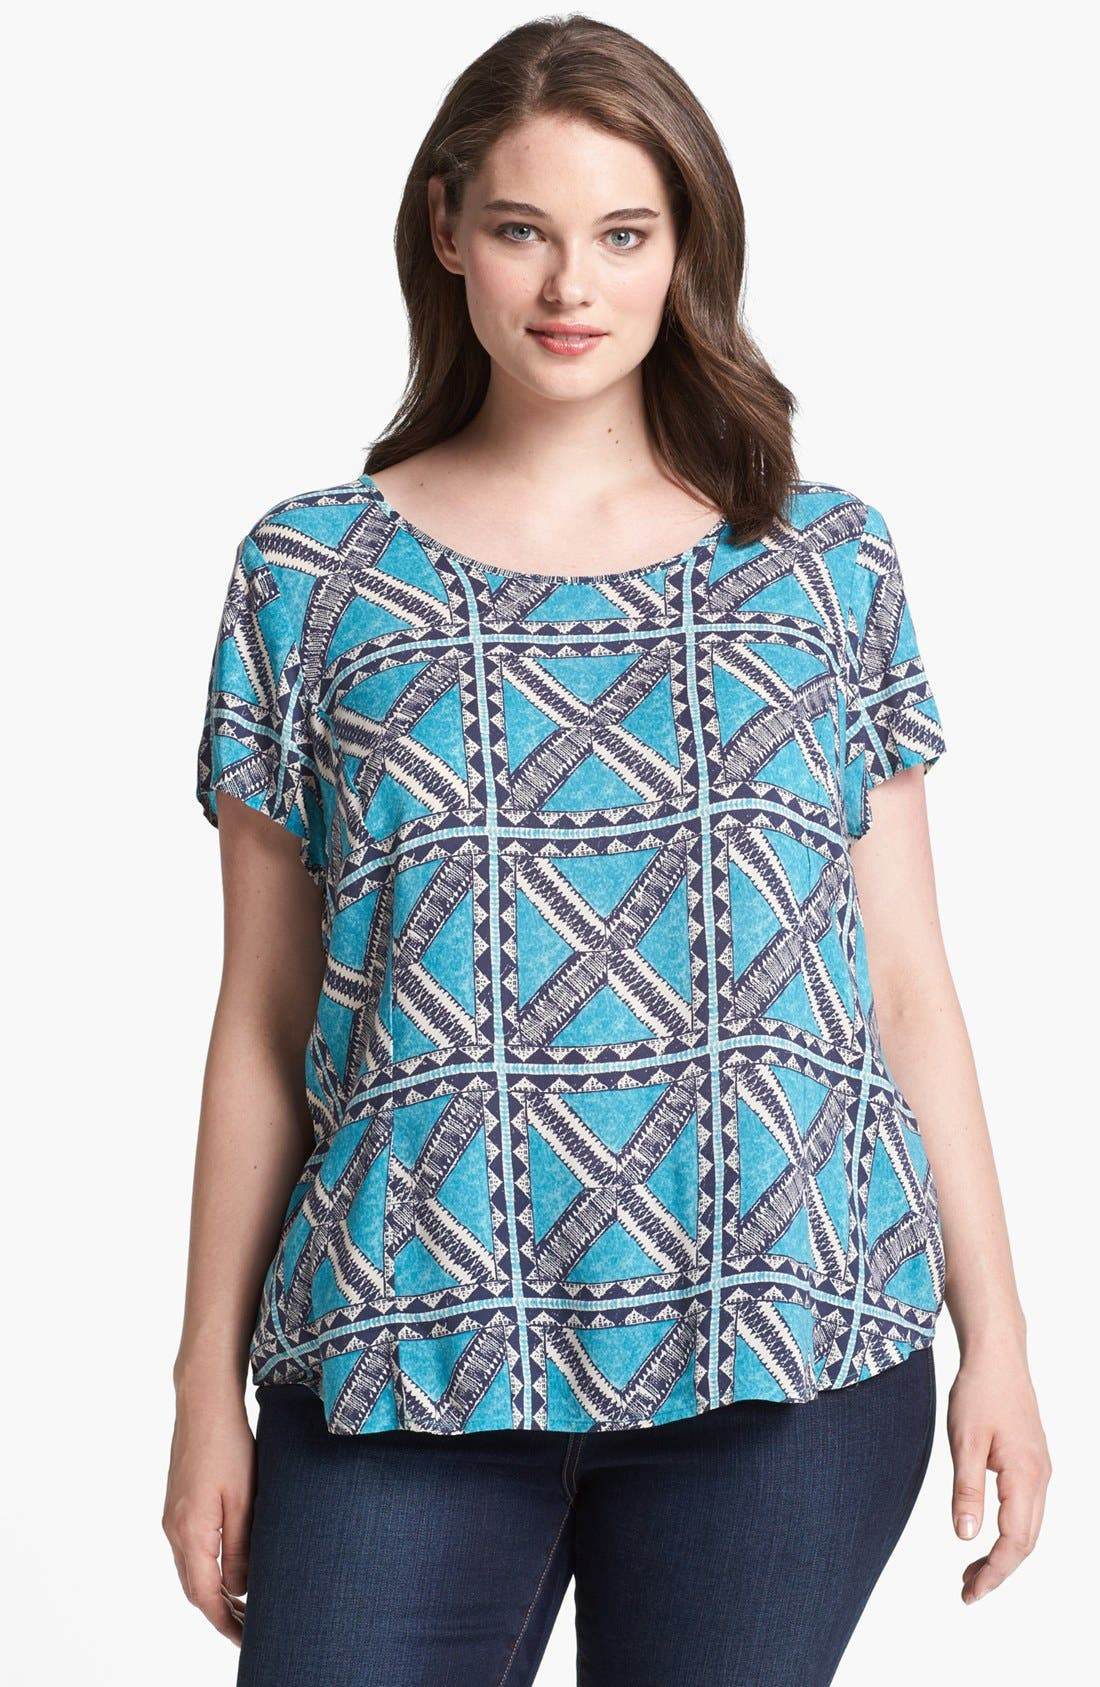 Alternate Image 1 Selected - Lucky Brand 'Brier Peter Dunham' Print Tee (Plus Size)